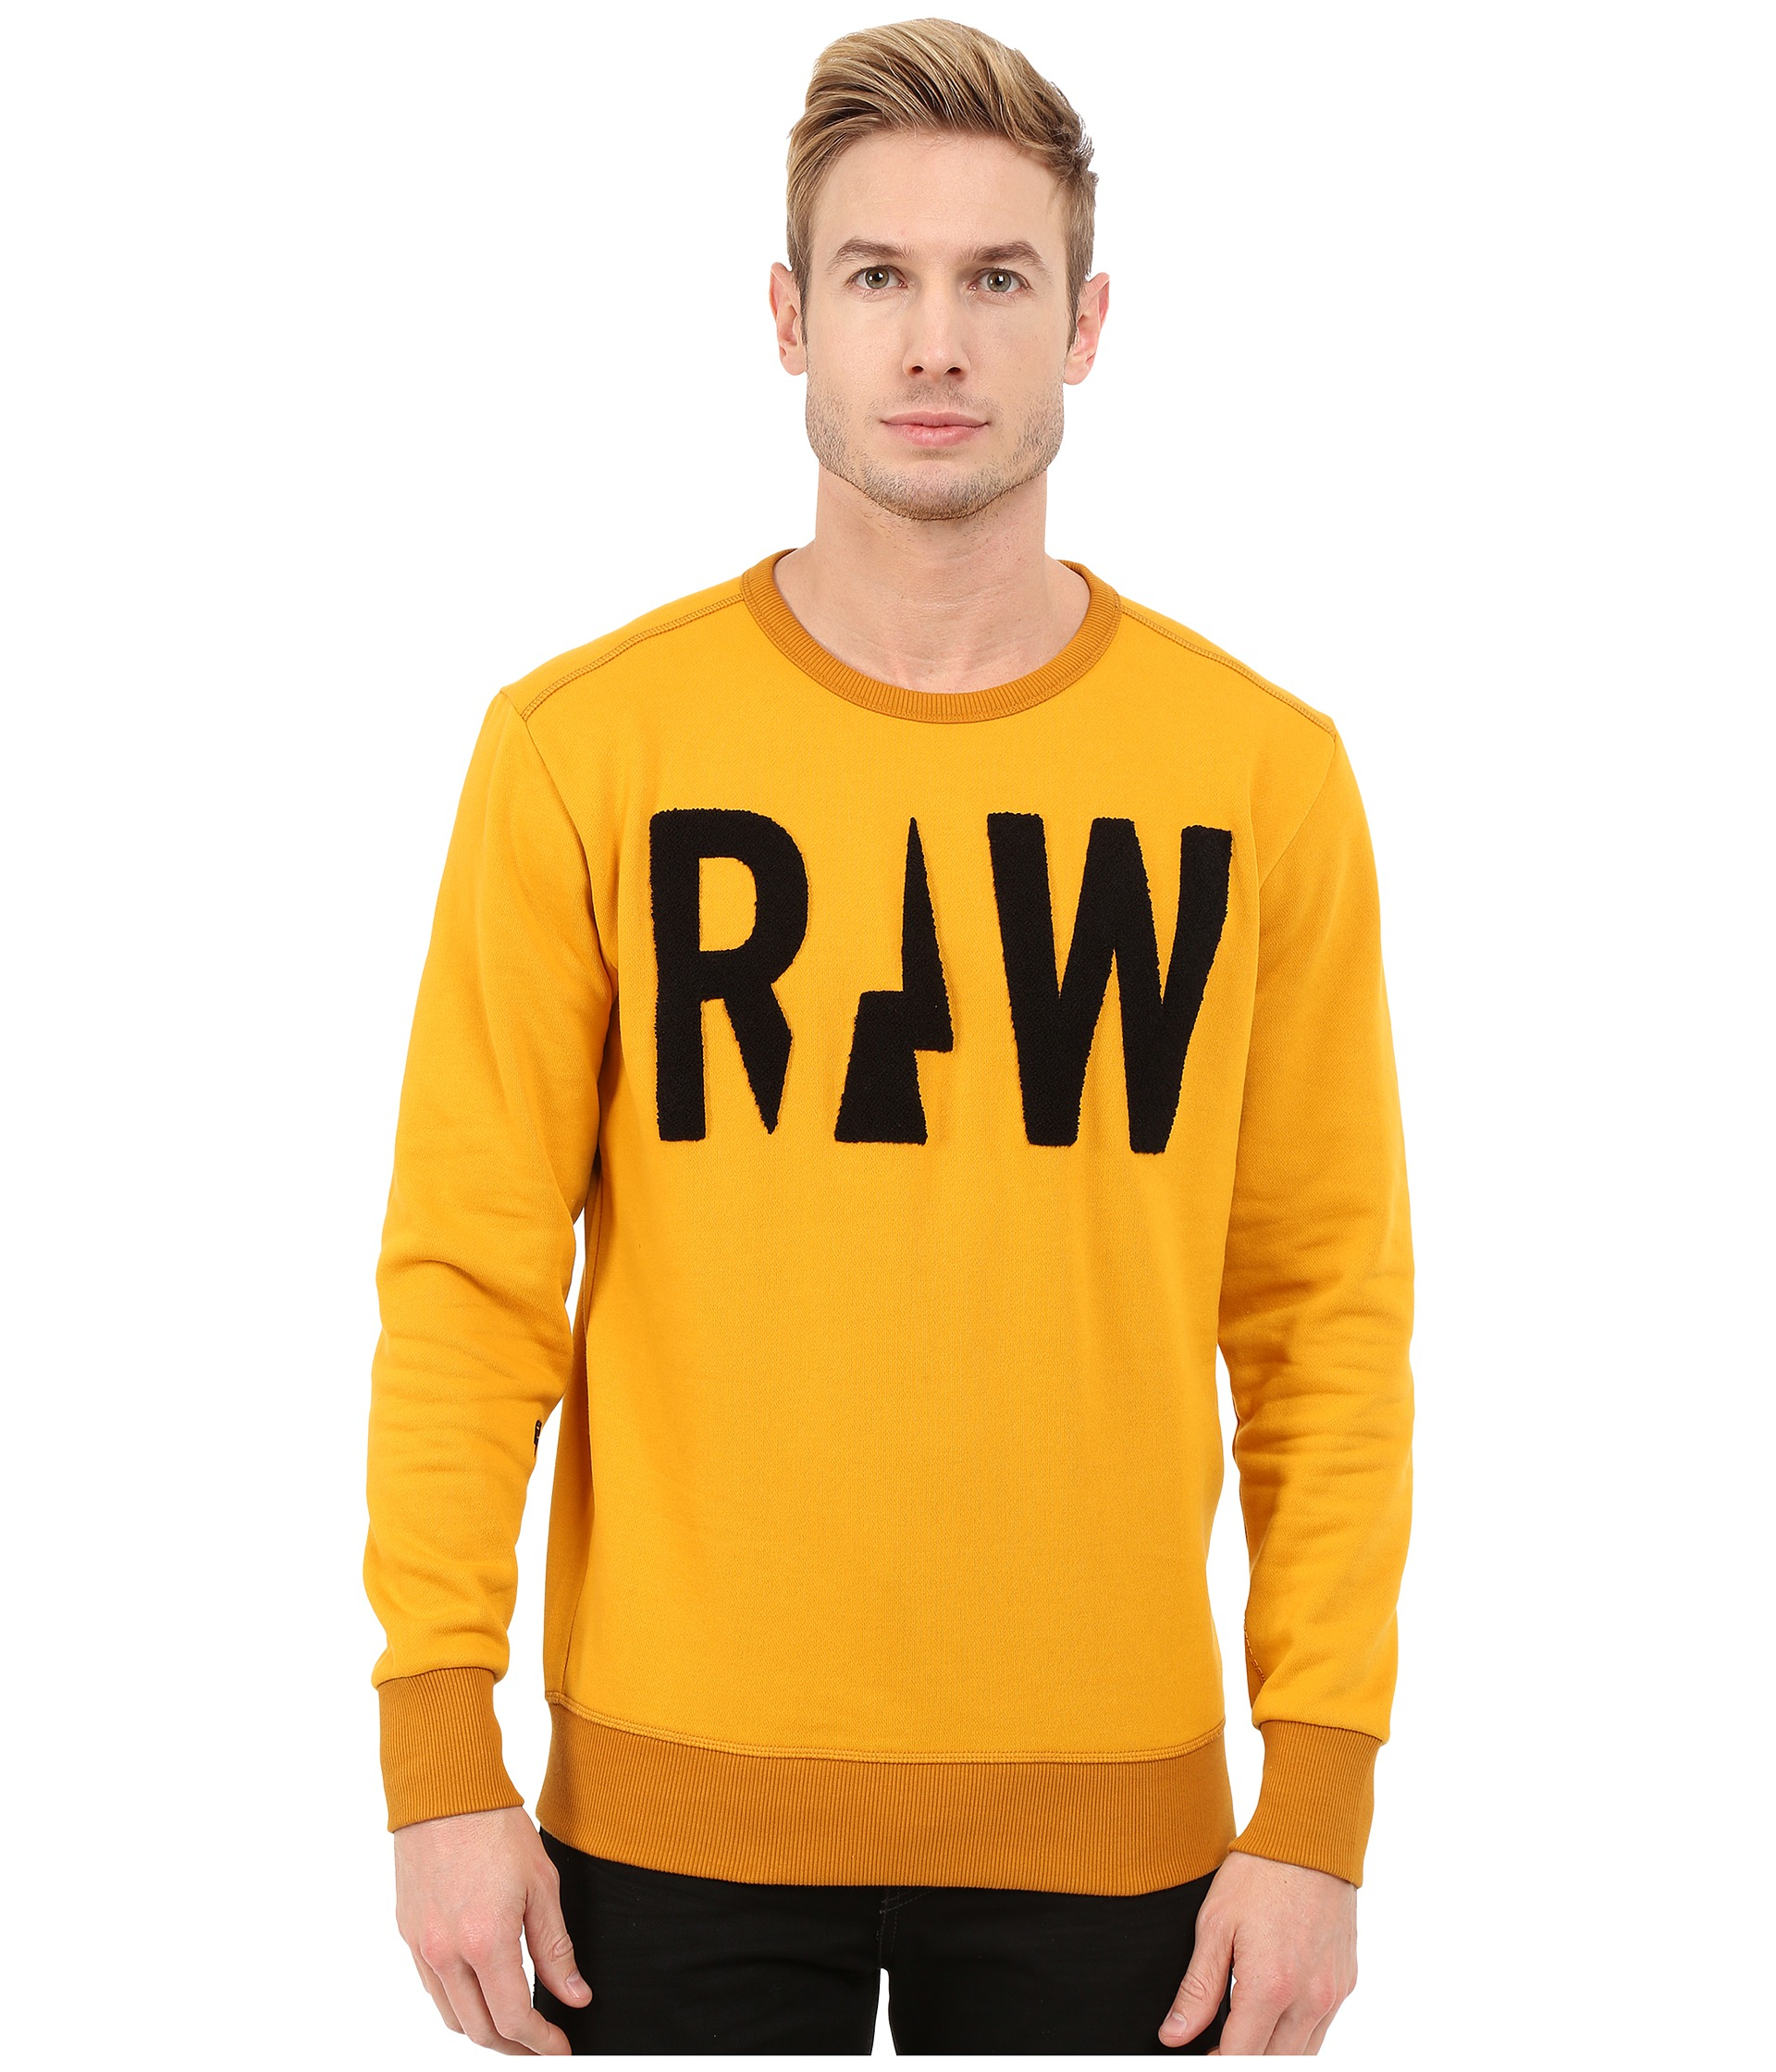 G-STAR RAW SWEATER gallery DYFIJFT